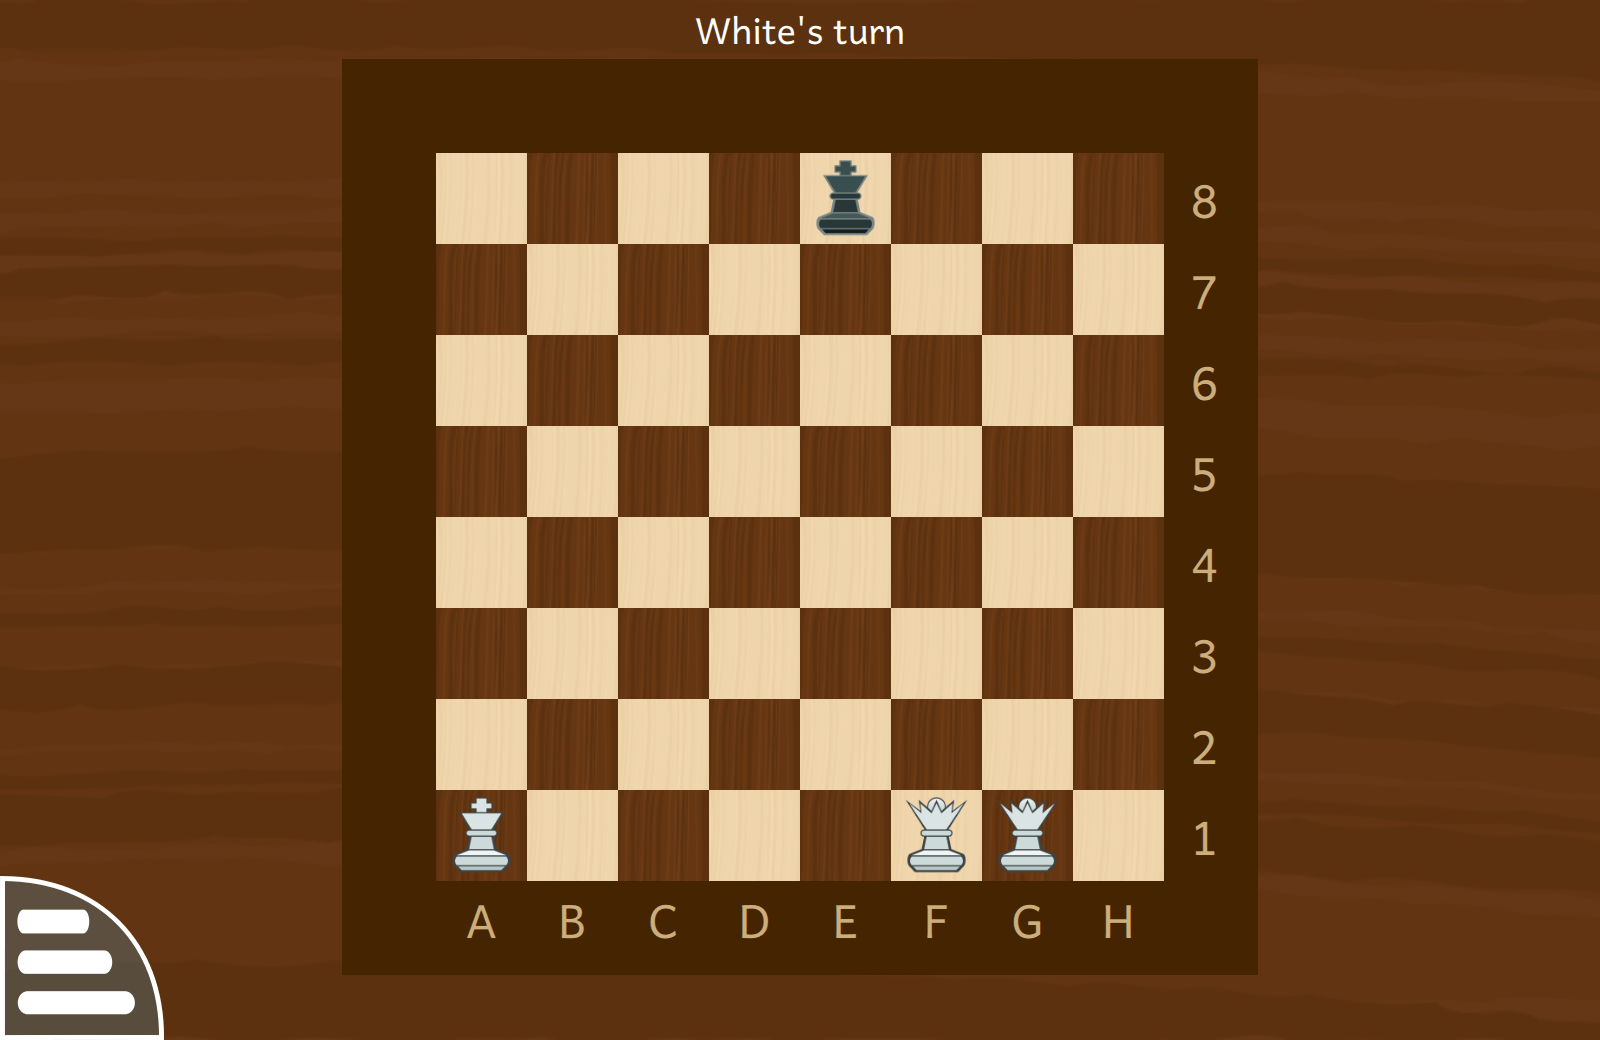 """End of chess game"" activity"